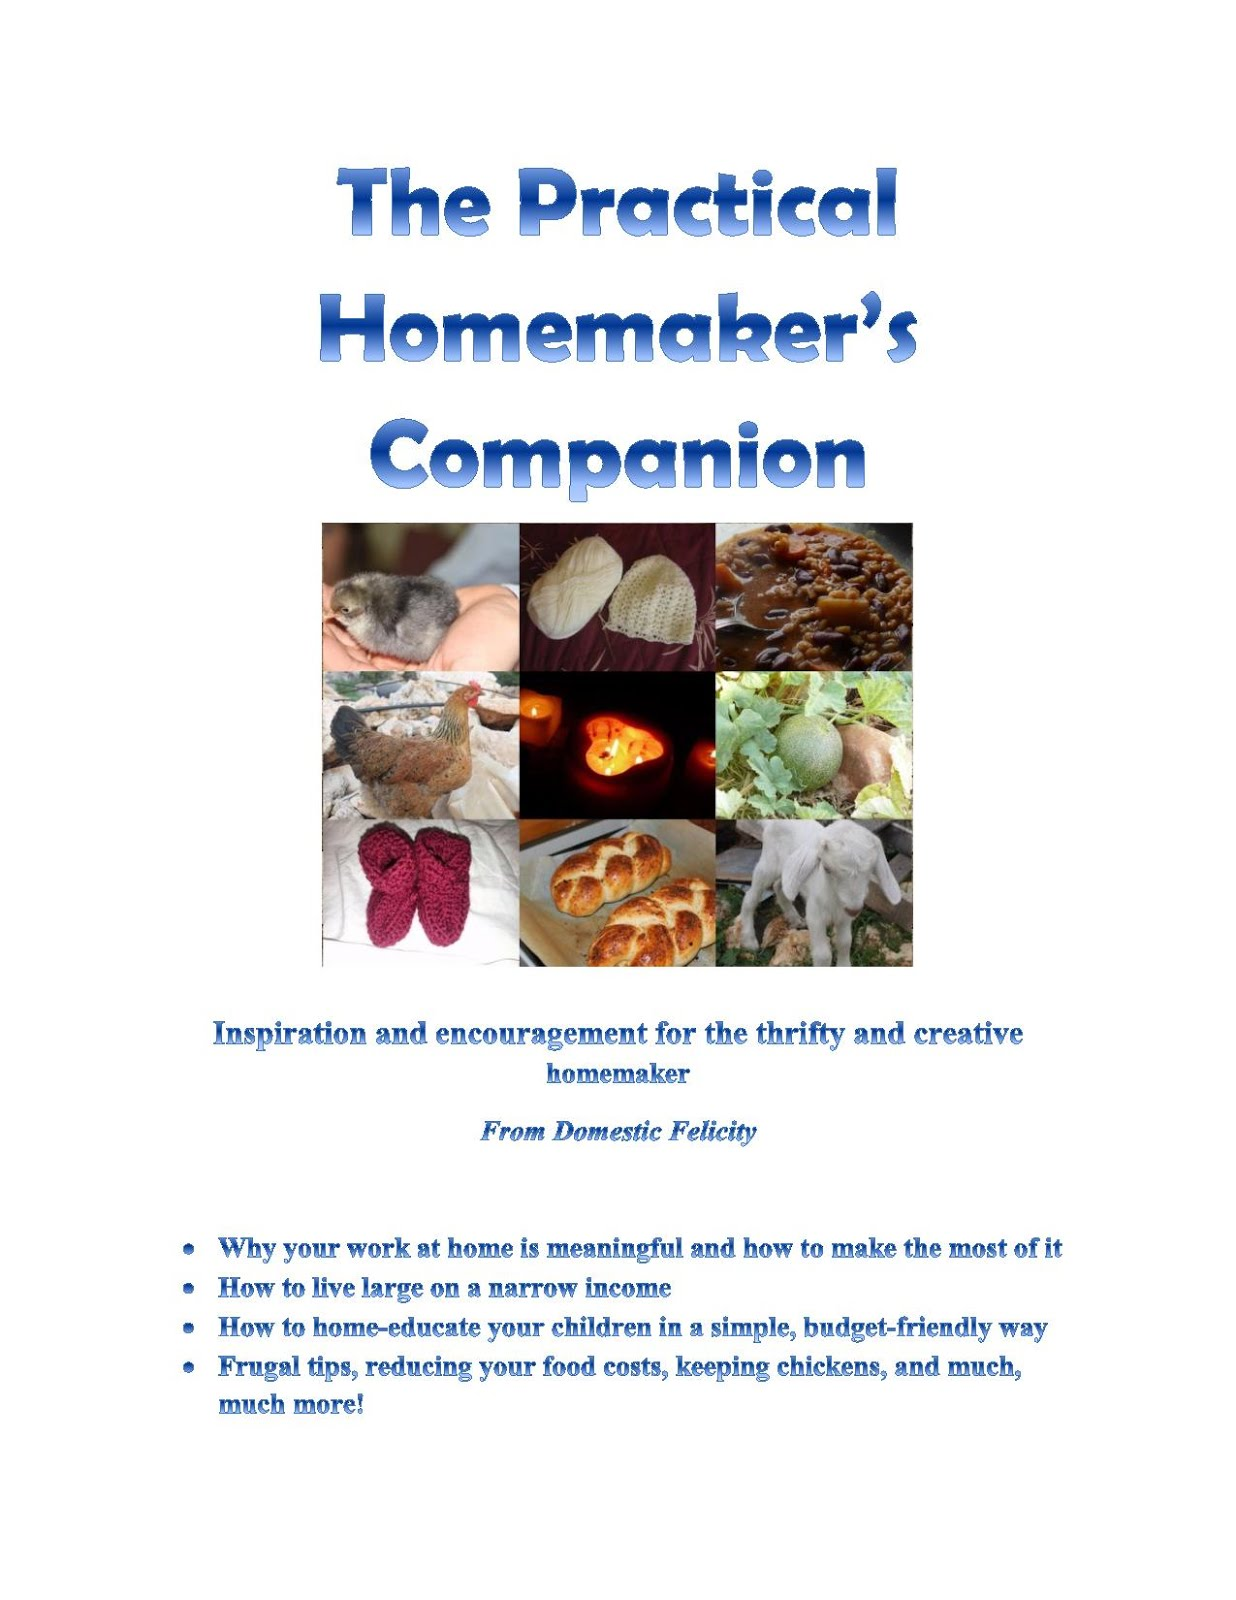 My e-book - The Practical Homemaker's Companion